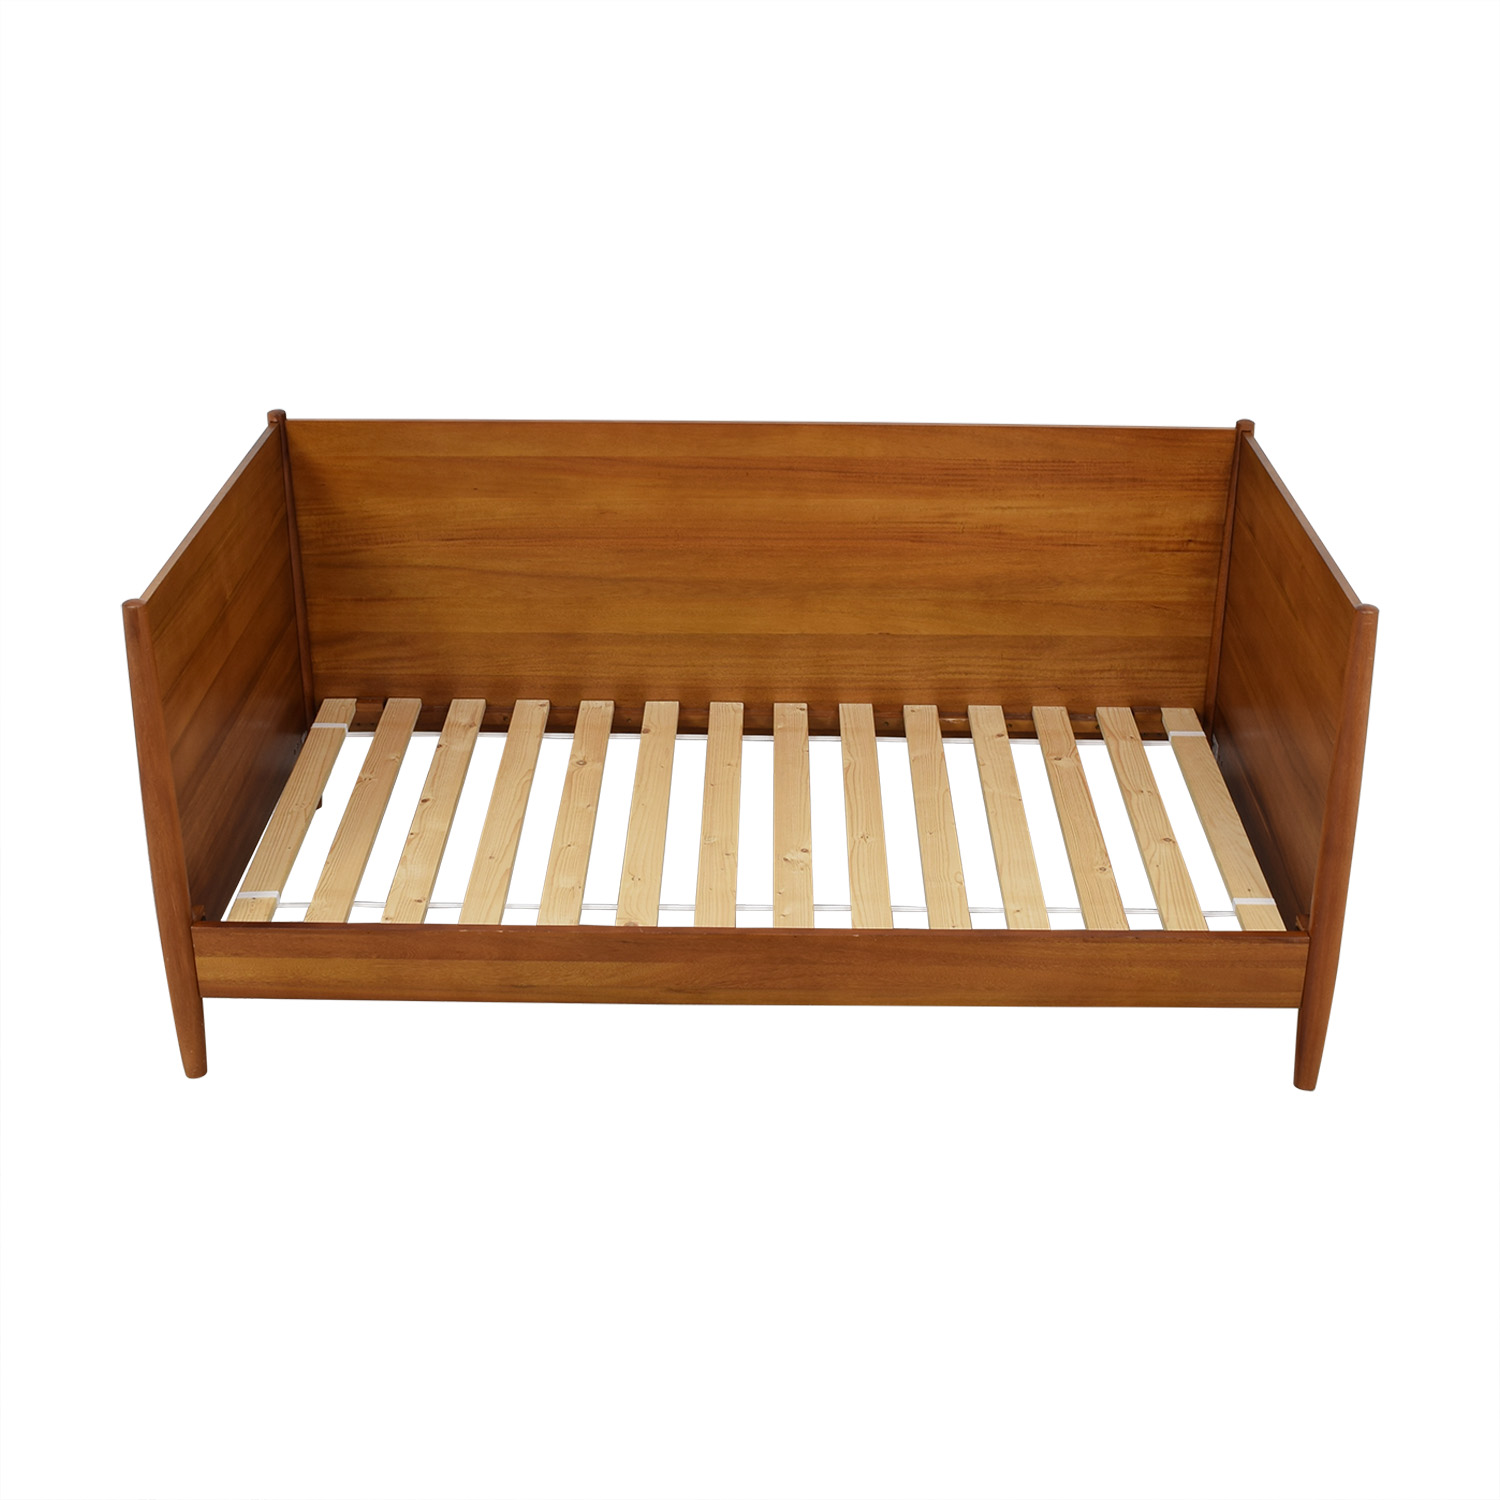 West Elm West Elm Mid Century Daybed used